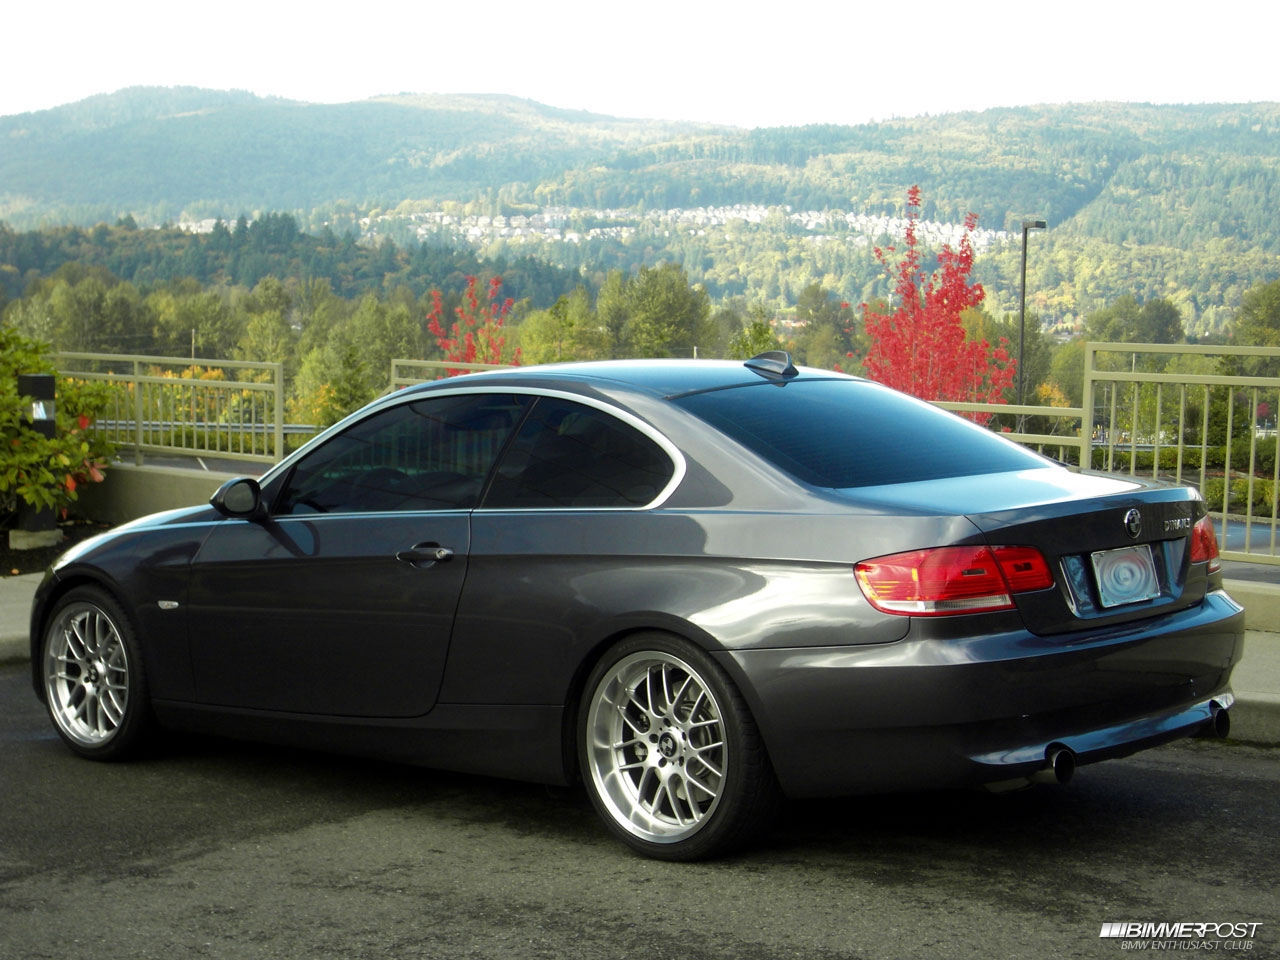 Superlubricity S 2008 Dinan S 335i Coupe Stage 3 Sold